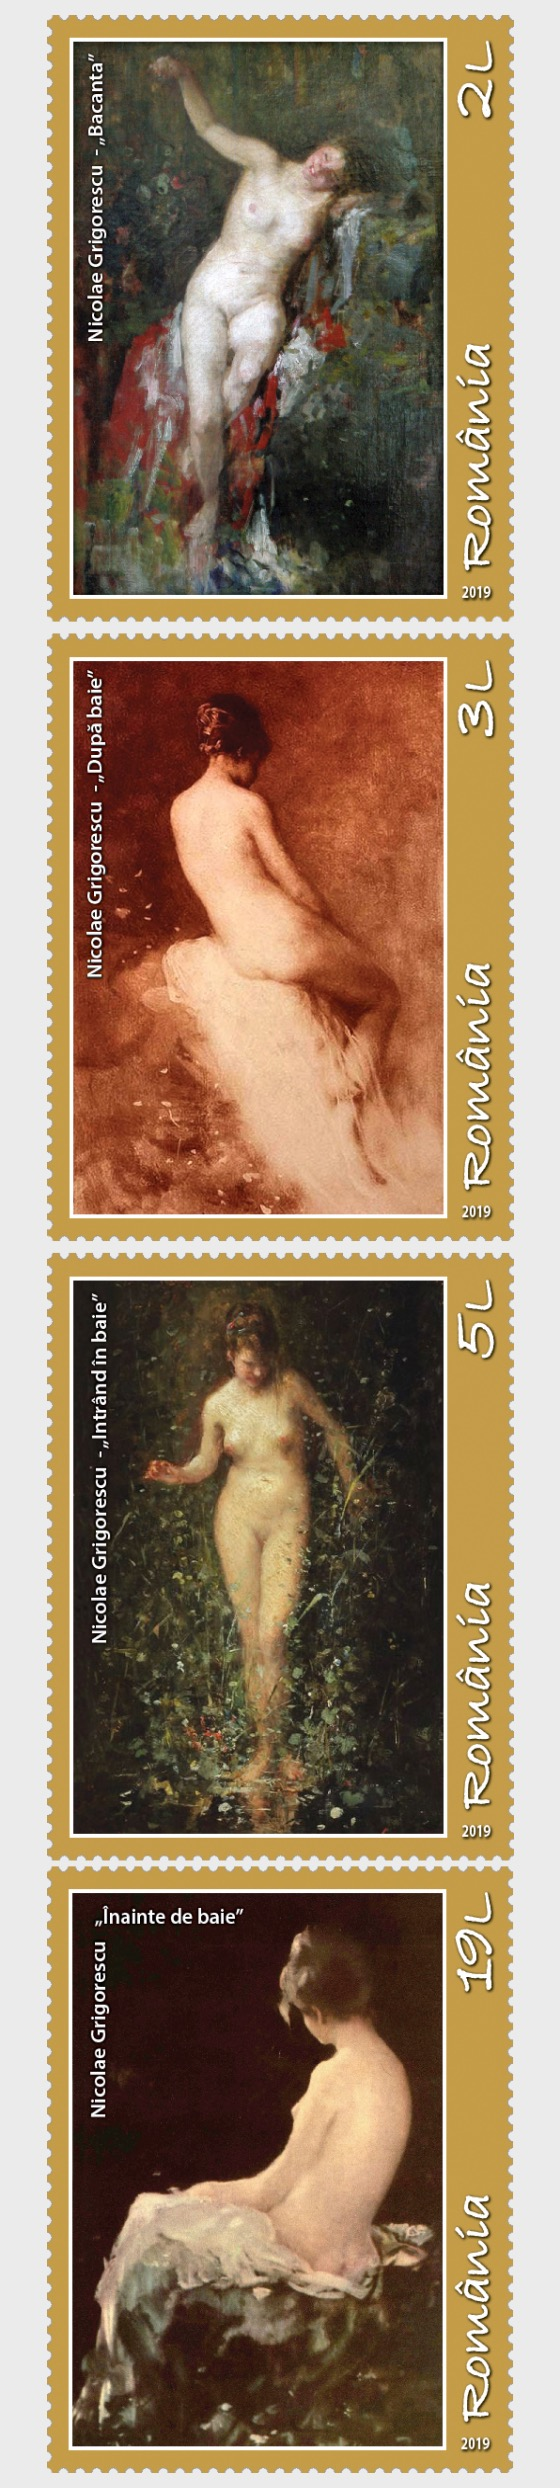 Nudes in Romanian Painting - Set